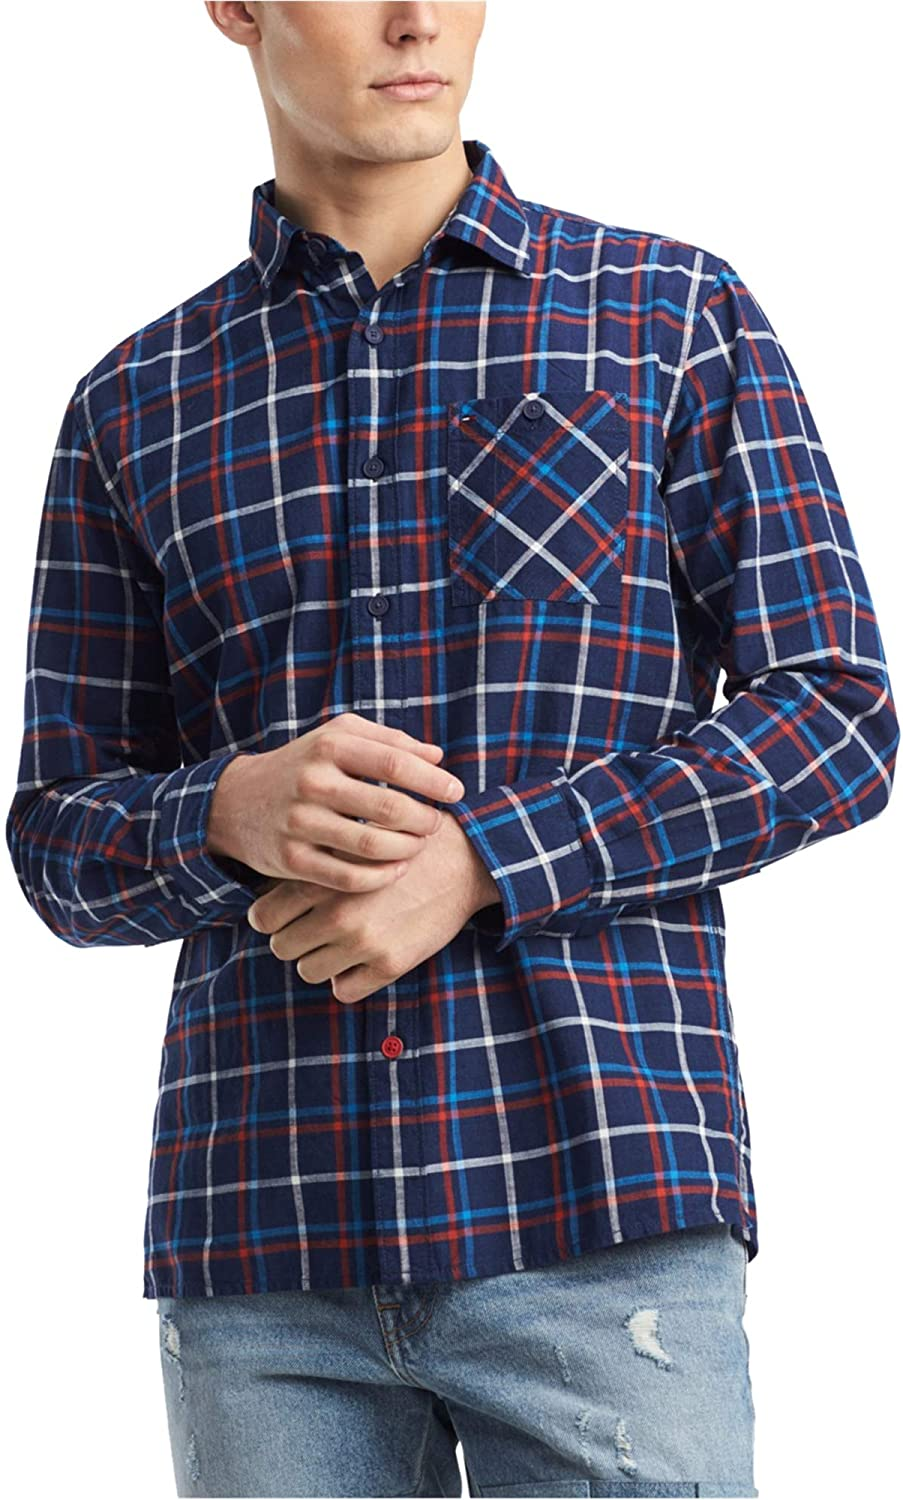 Tommy Hilfiger Mens Windowpane Plaid Button Up Shirt